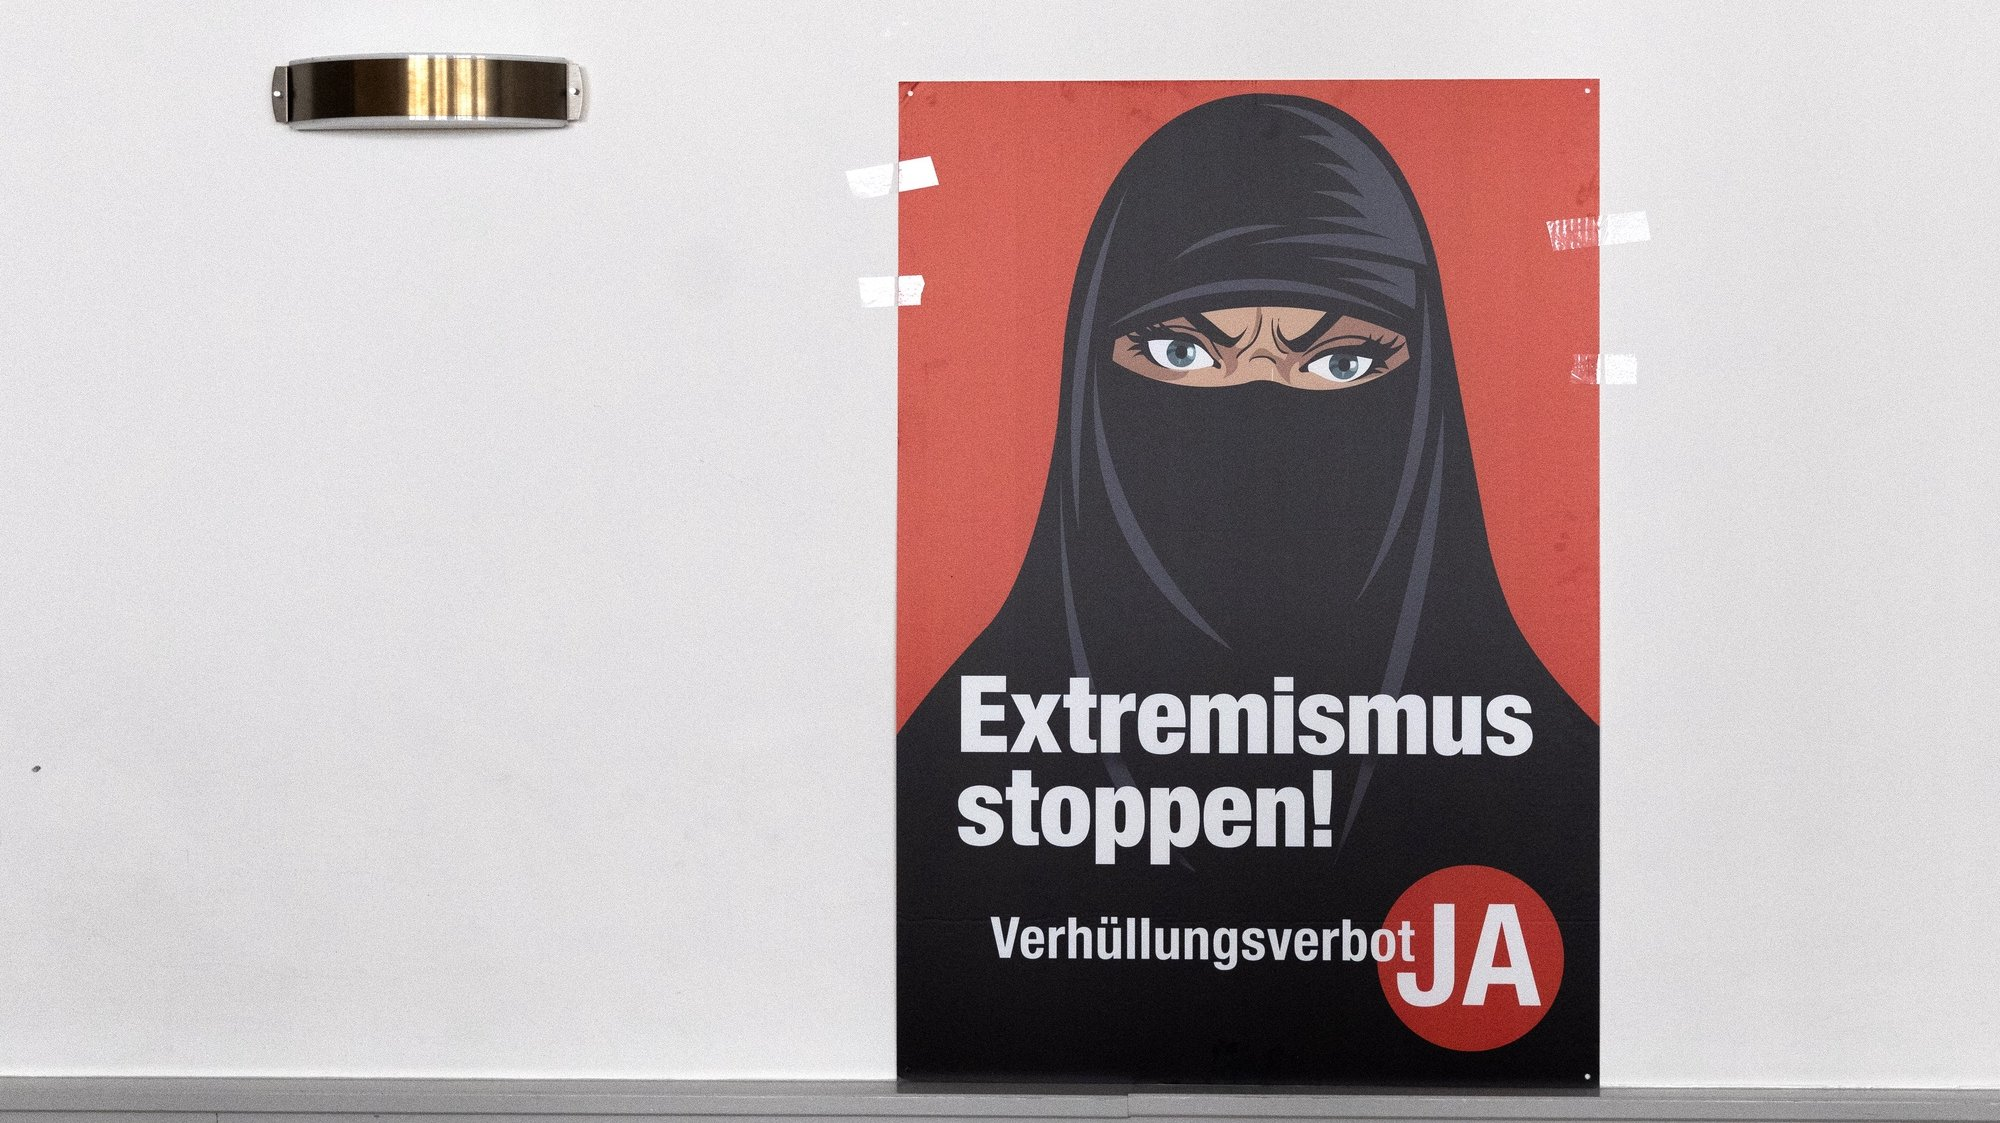 epa09059579 A poster 'Stop Extremism' hangs on a wall at the meeting place of the supporters of the Burqa Ban initiative, in Bern, Switezrland, 07 March 2021. Swiss citizens vote on a proposal to prohibit the concealment of one's face in the public space. Led by right-wing groups, the so-called 'anti-burqa' initiative provides for a ban on the wearing of the niqab, as well as other non-religious forms of face concealment.  EPA/PETER KLAUNZER